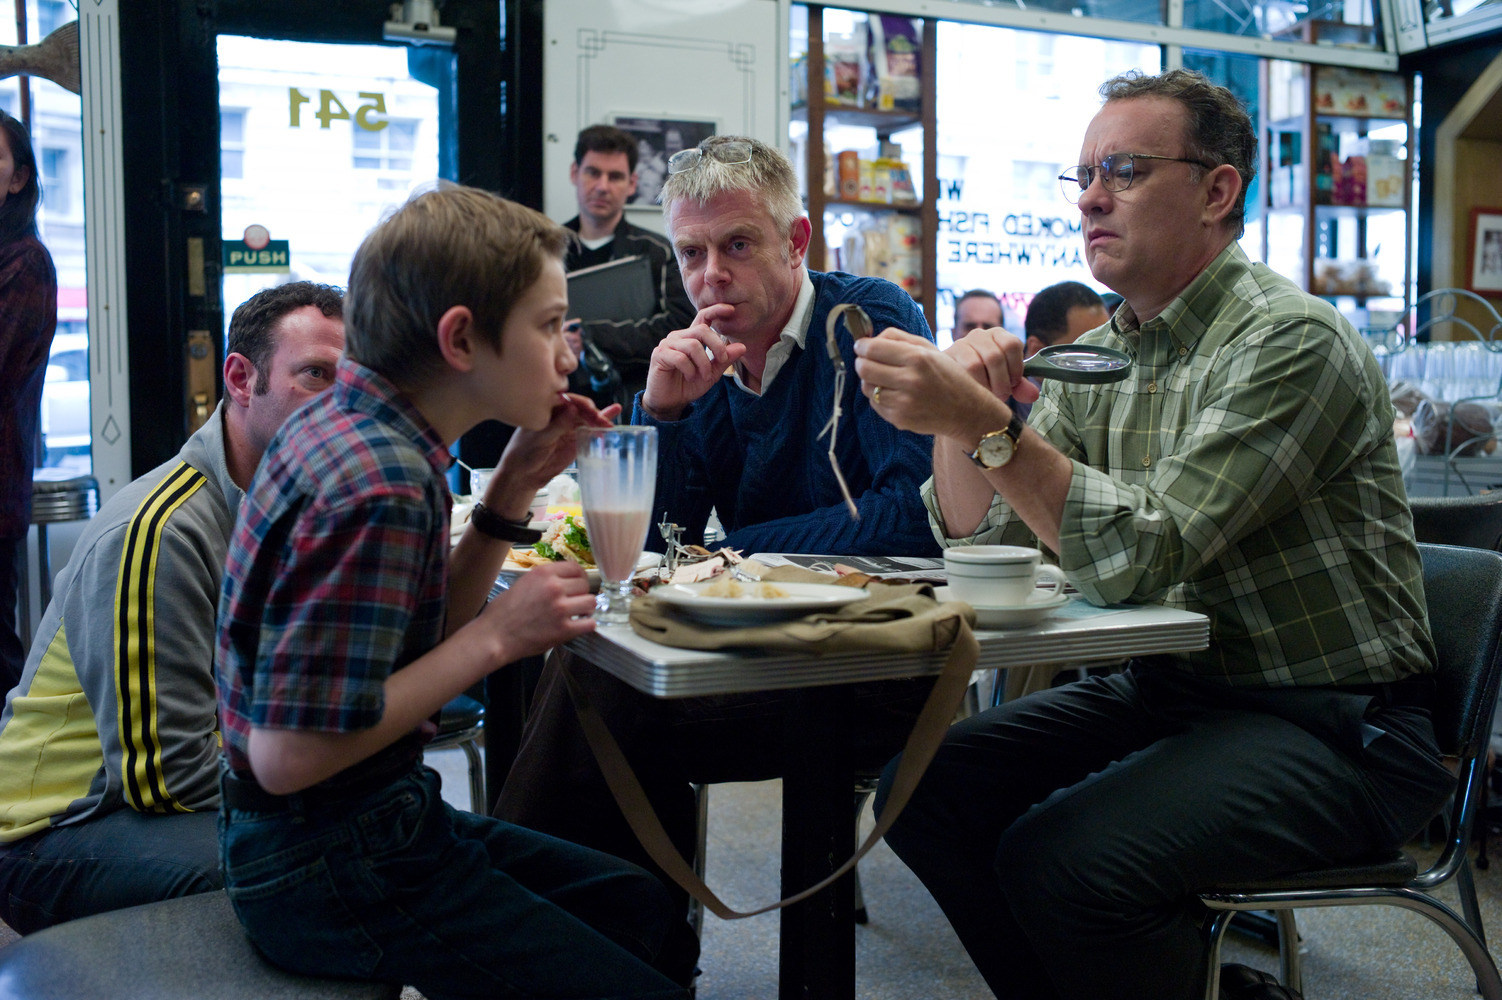 Extremely Loud and Incredibly Close (2011) Behind the Scenes